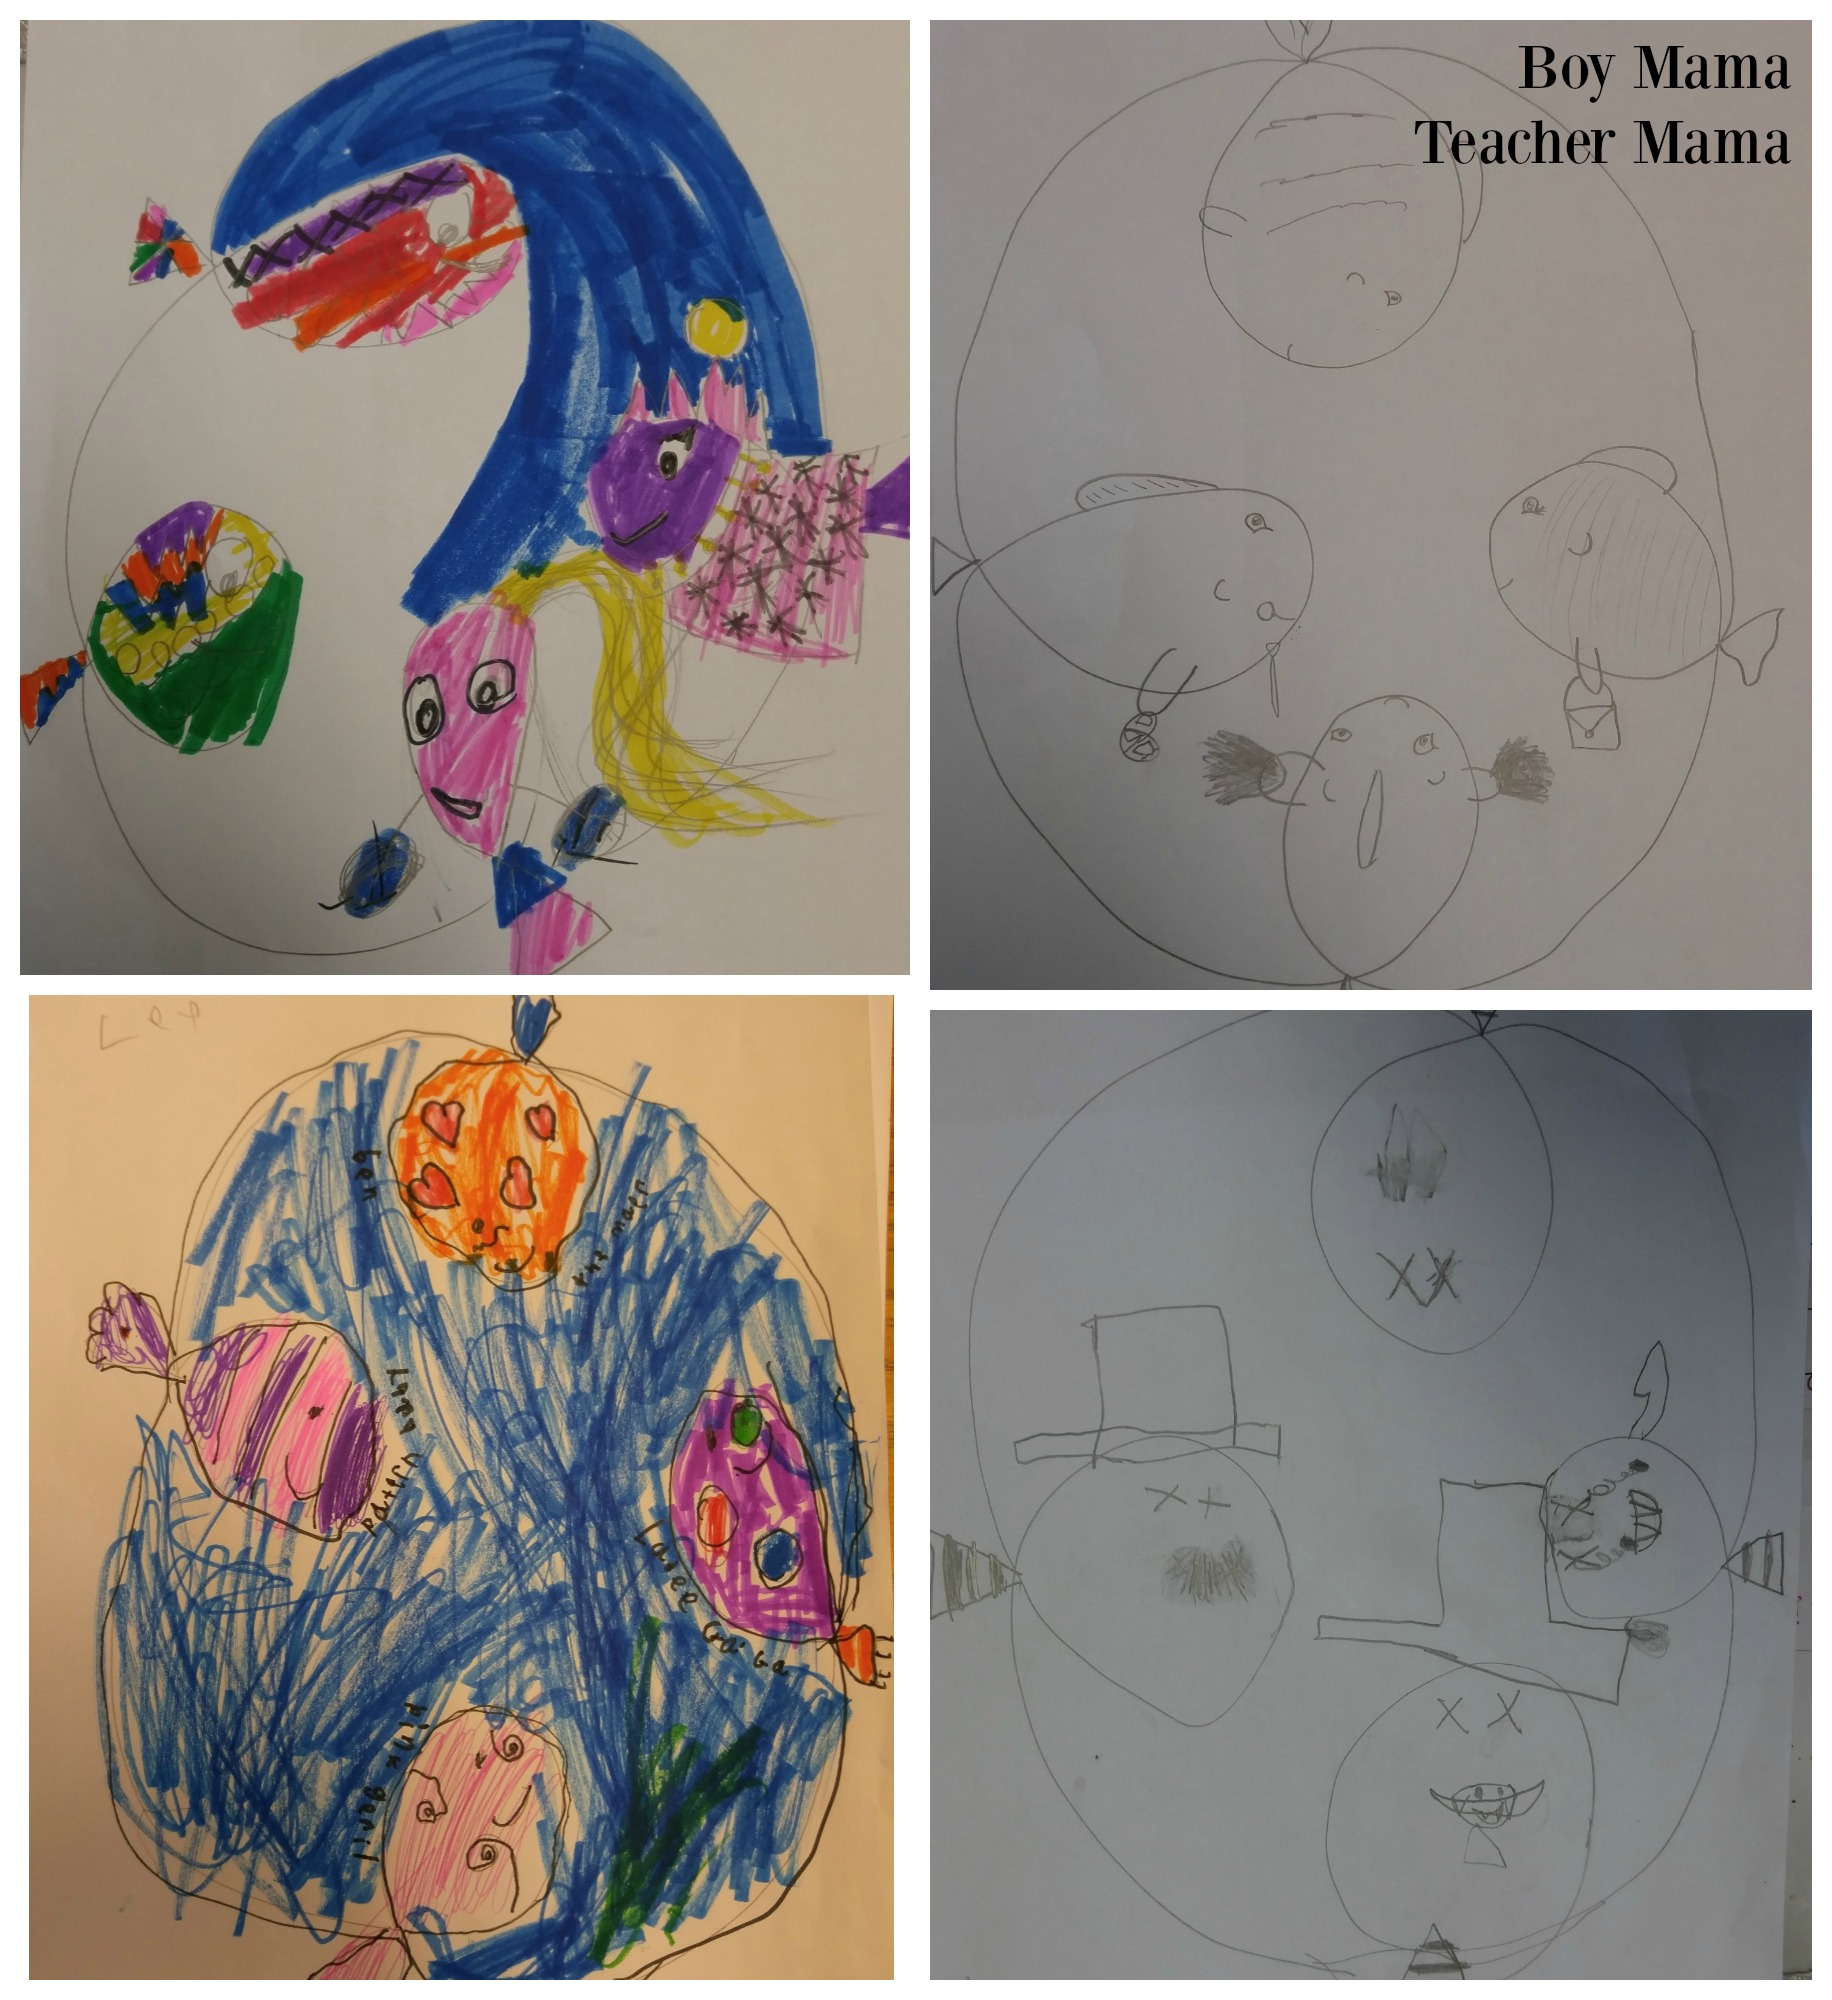 Boy Mama Teacher Mama Tangle Art and Drawing